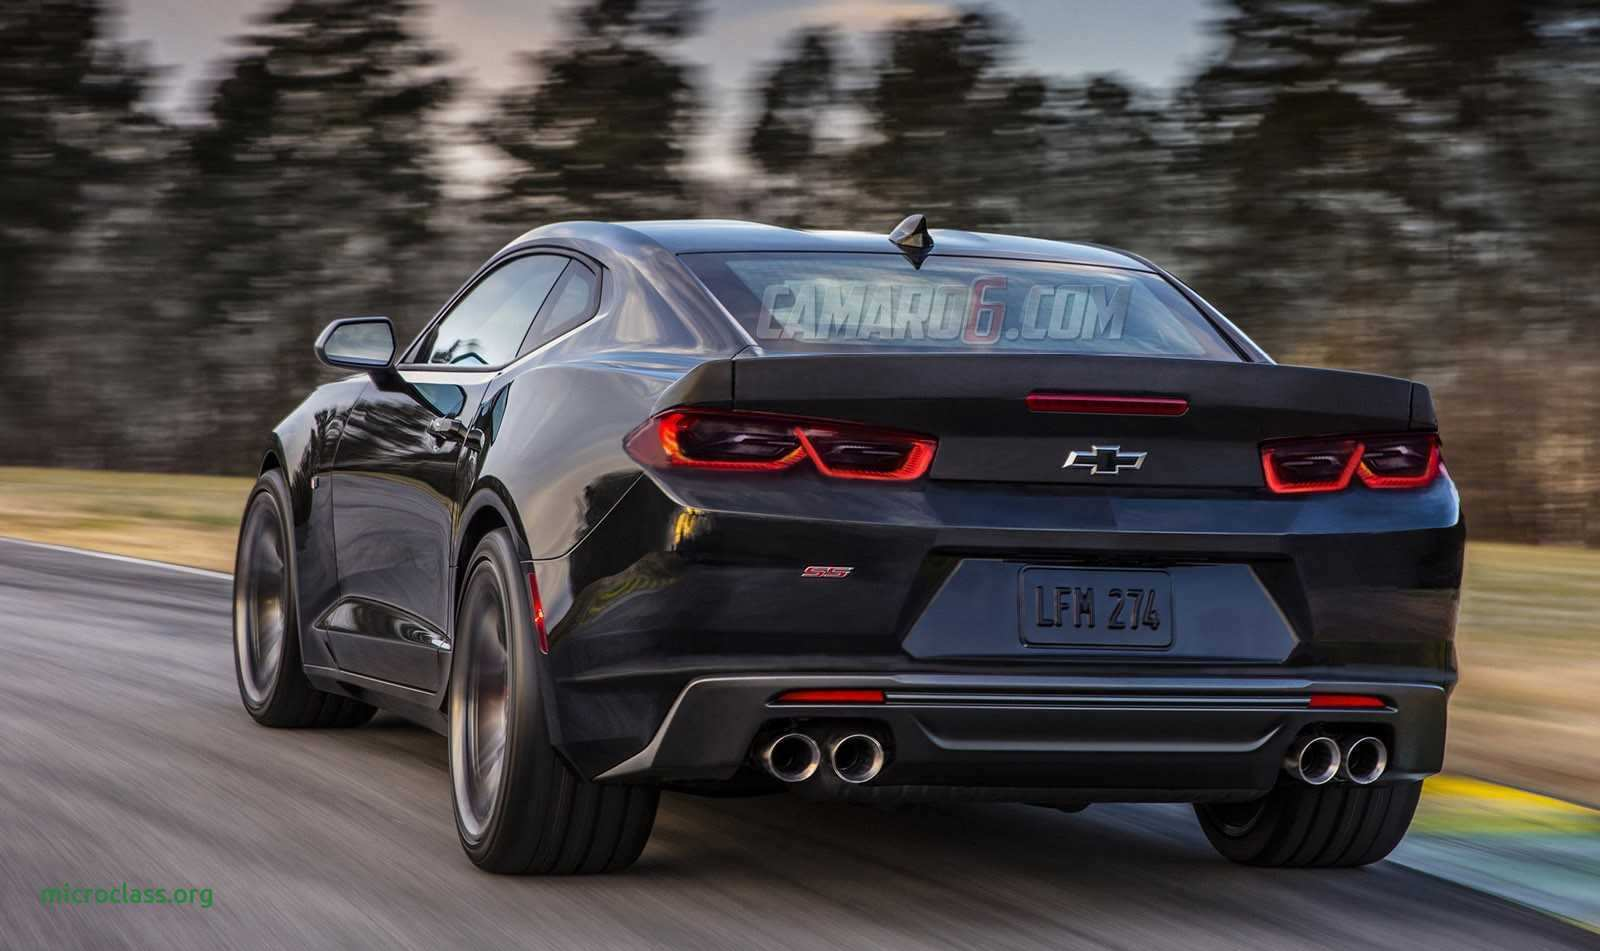 91 The Best Chevrolet Chevelle 2019 Overview Spesification by Best Chevrolet Chevelle 2019 Overview